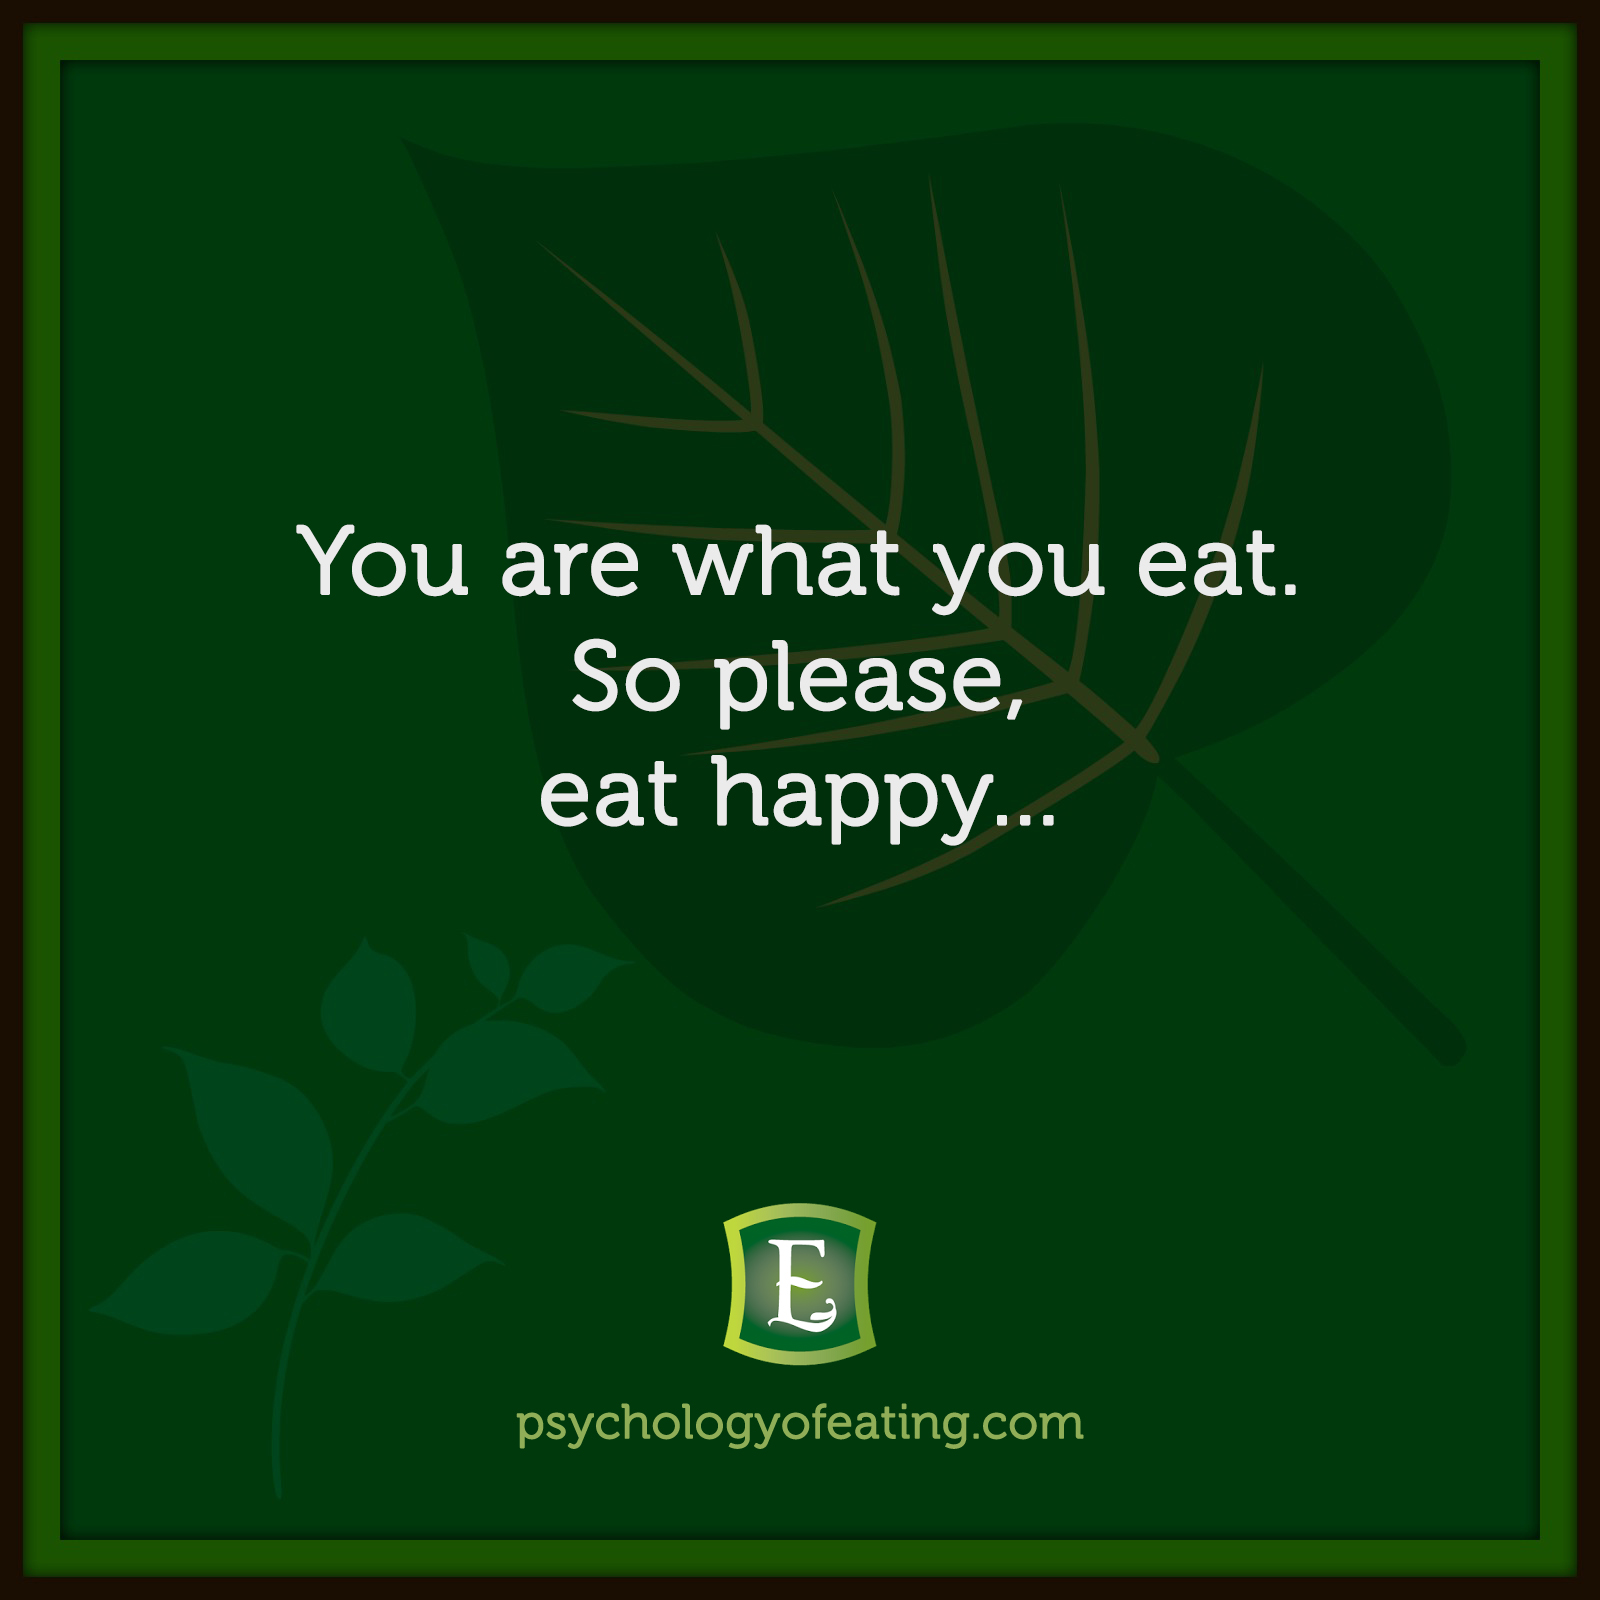 You are what you eat. So please, eat happy… #health #nutrition #eatingpsychology #IPE